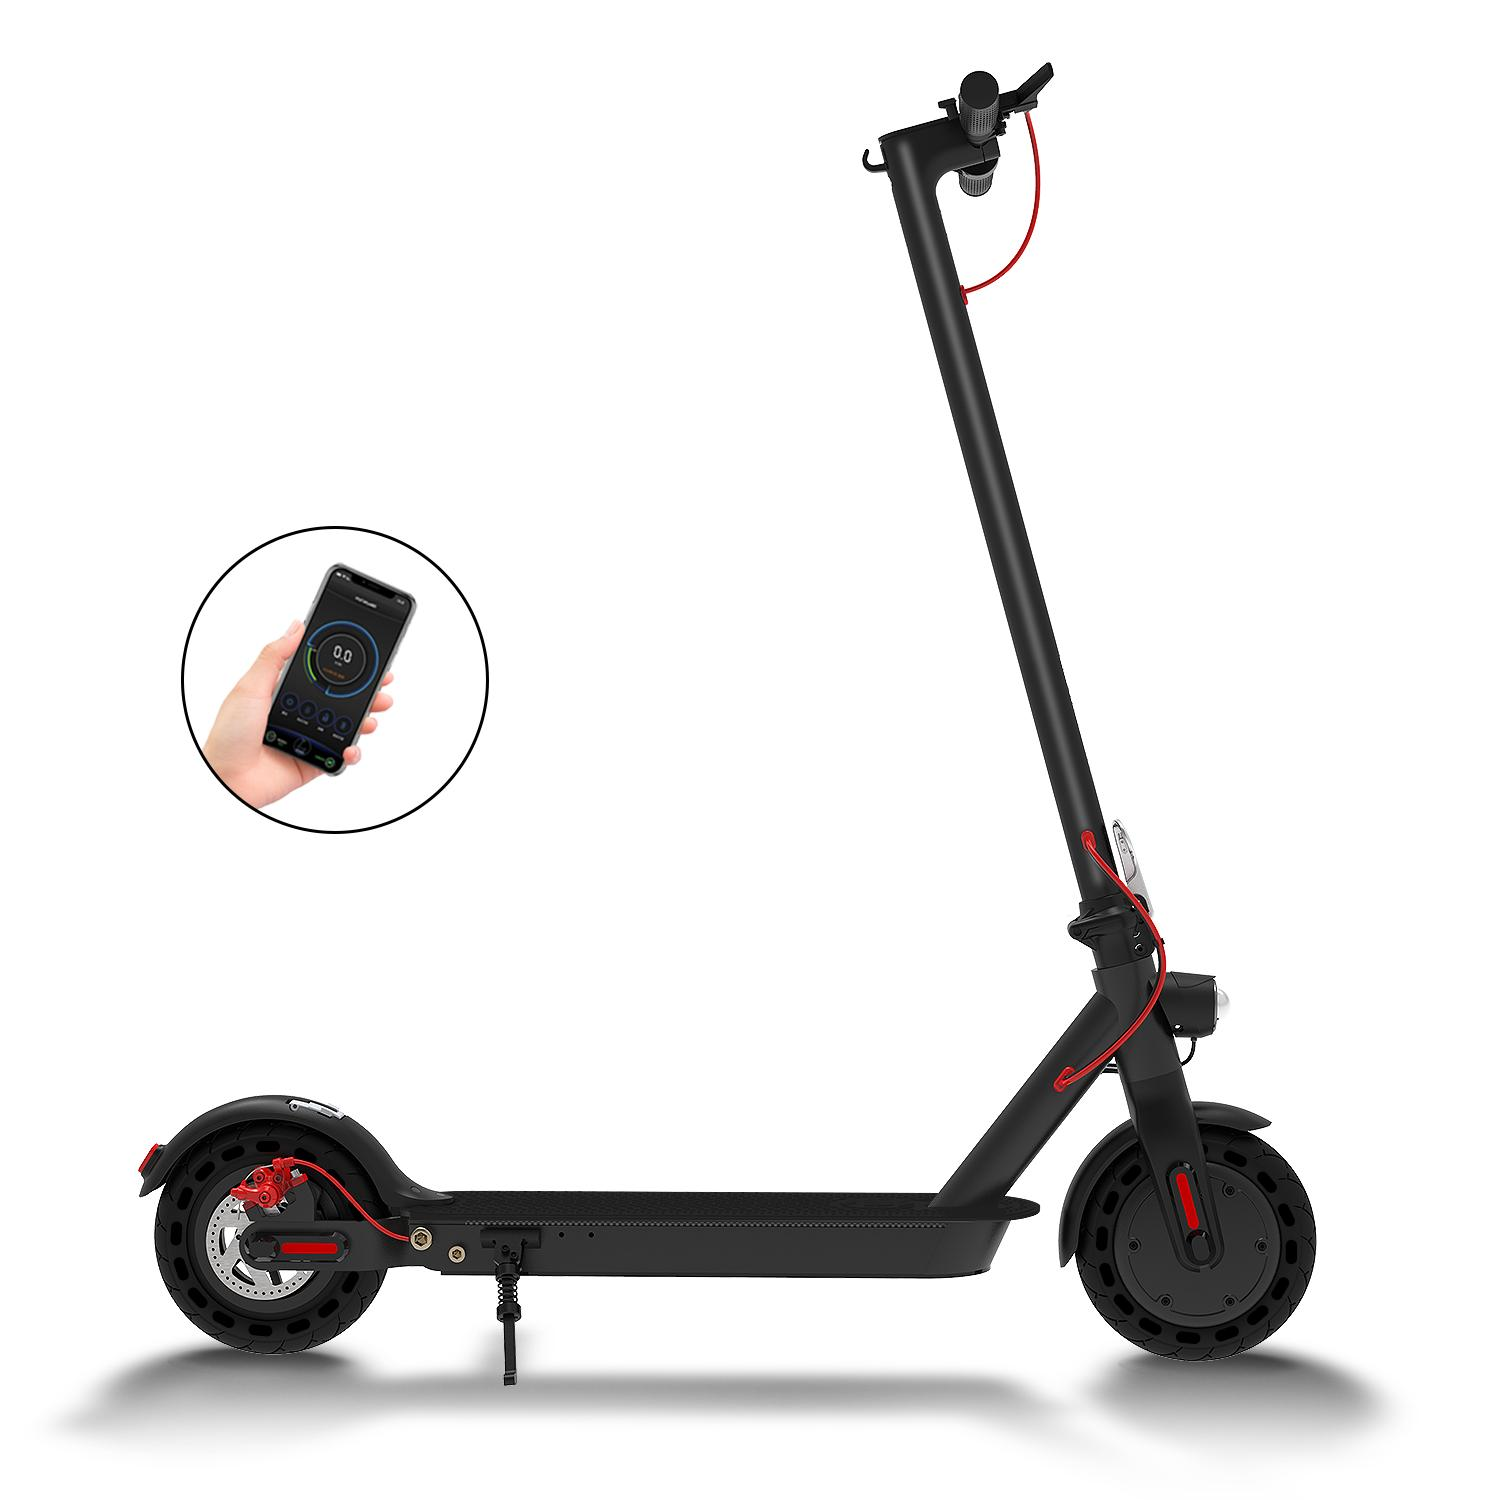 hiboy s2 adult high speed foldable electric